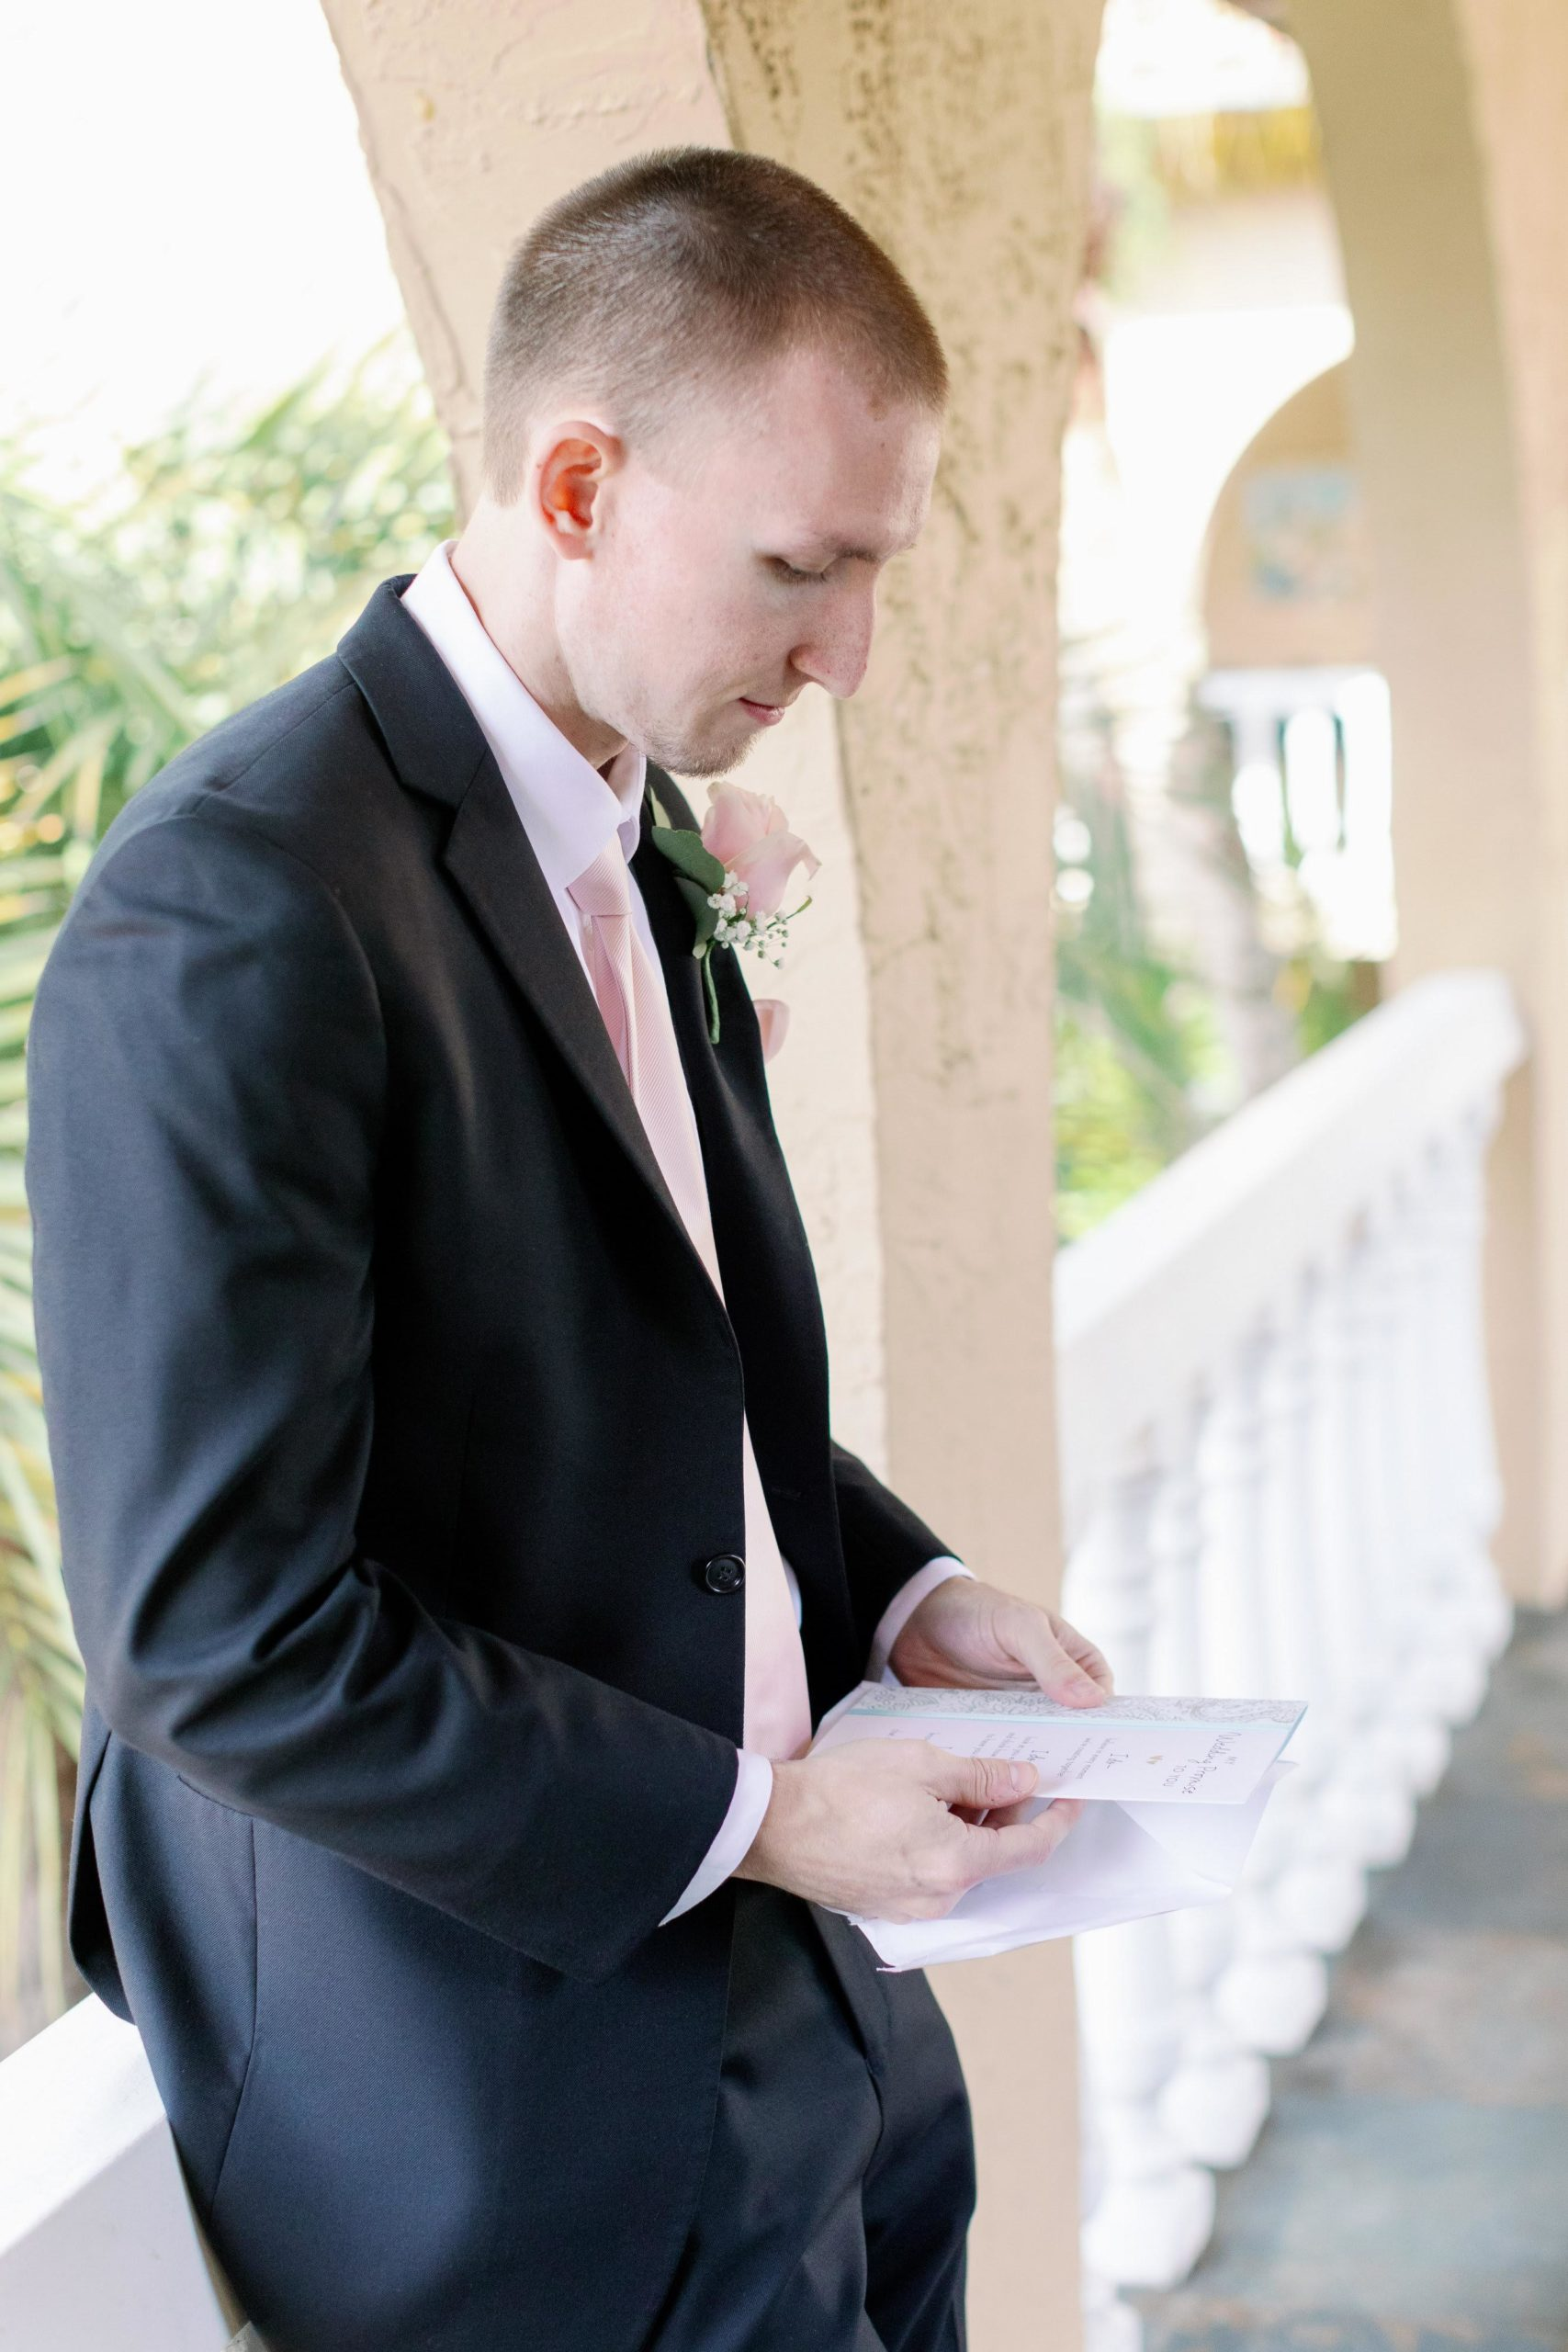 Groom sitting on white railing reading letter from bride